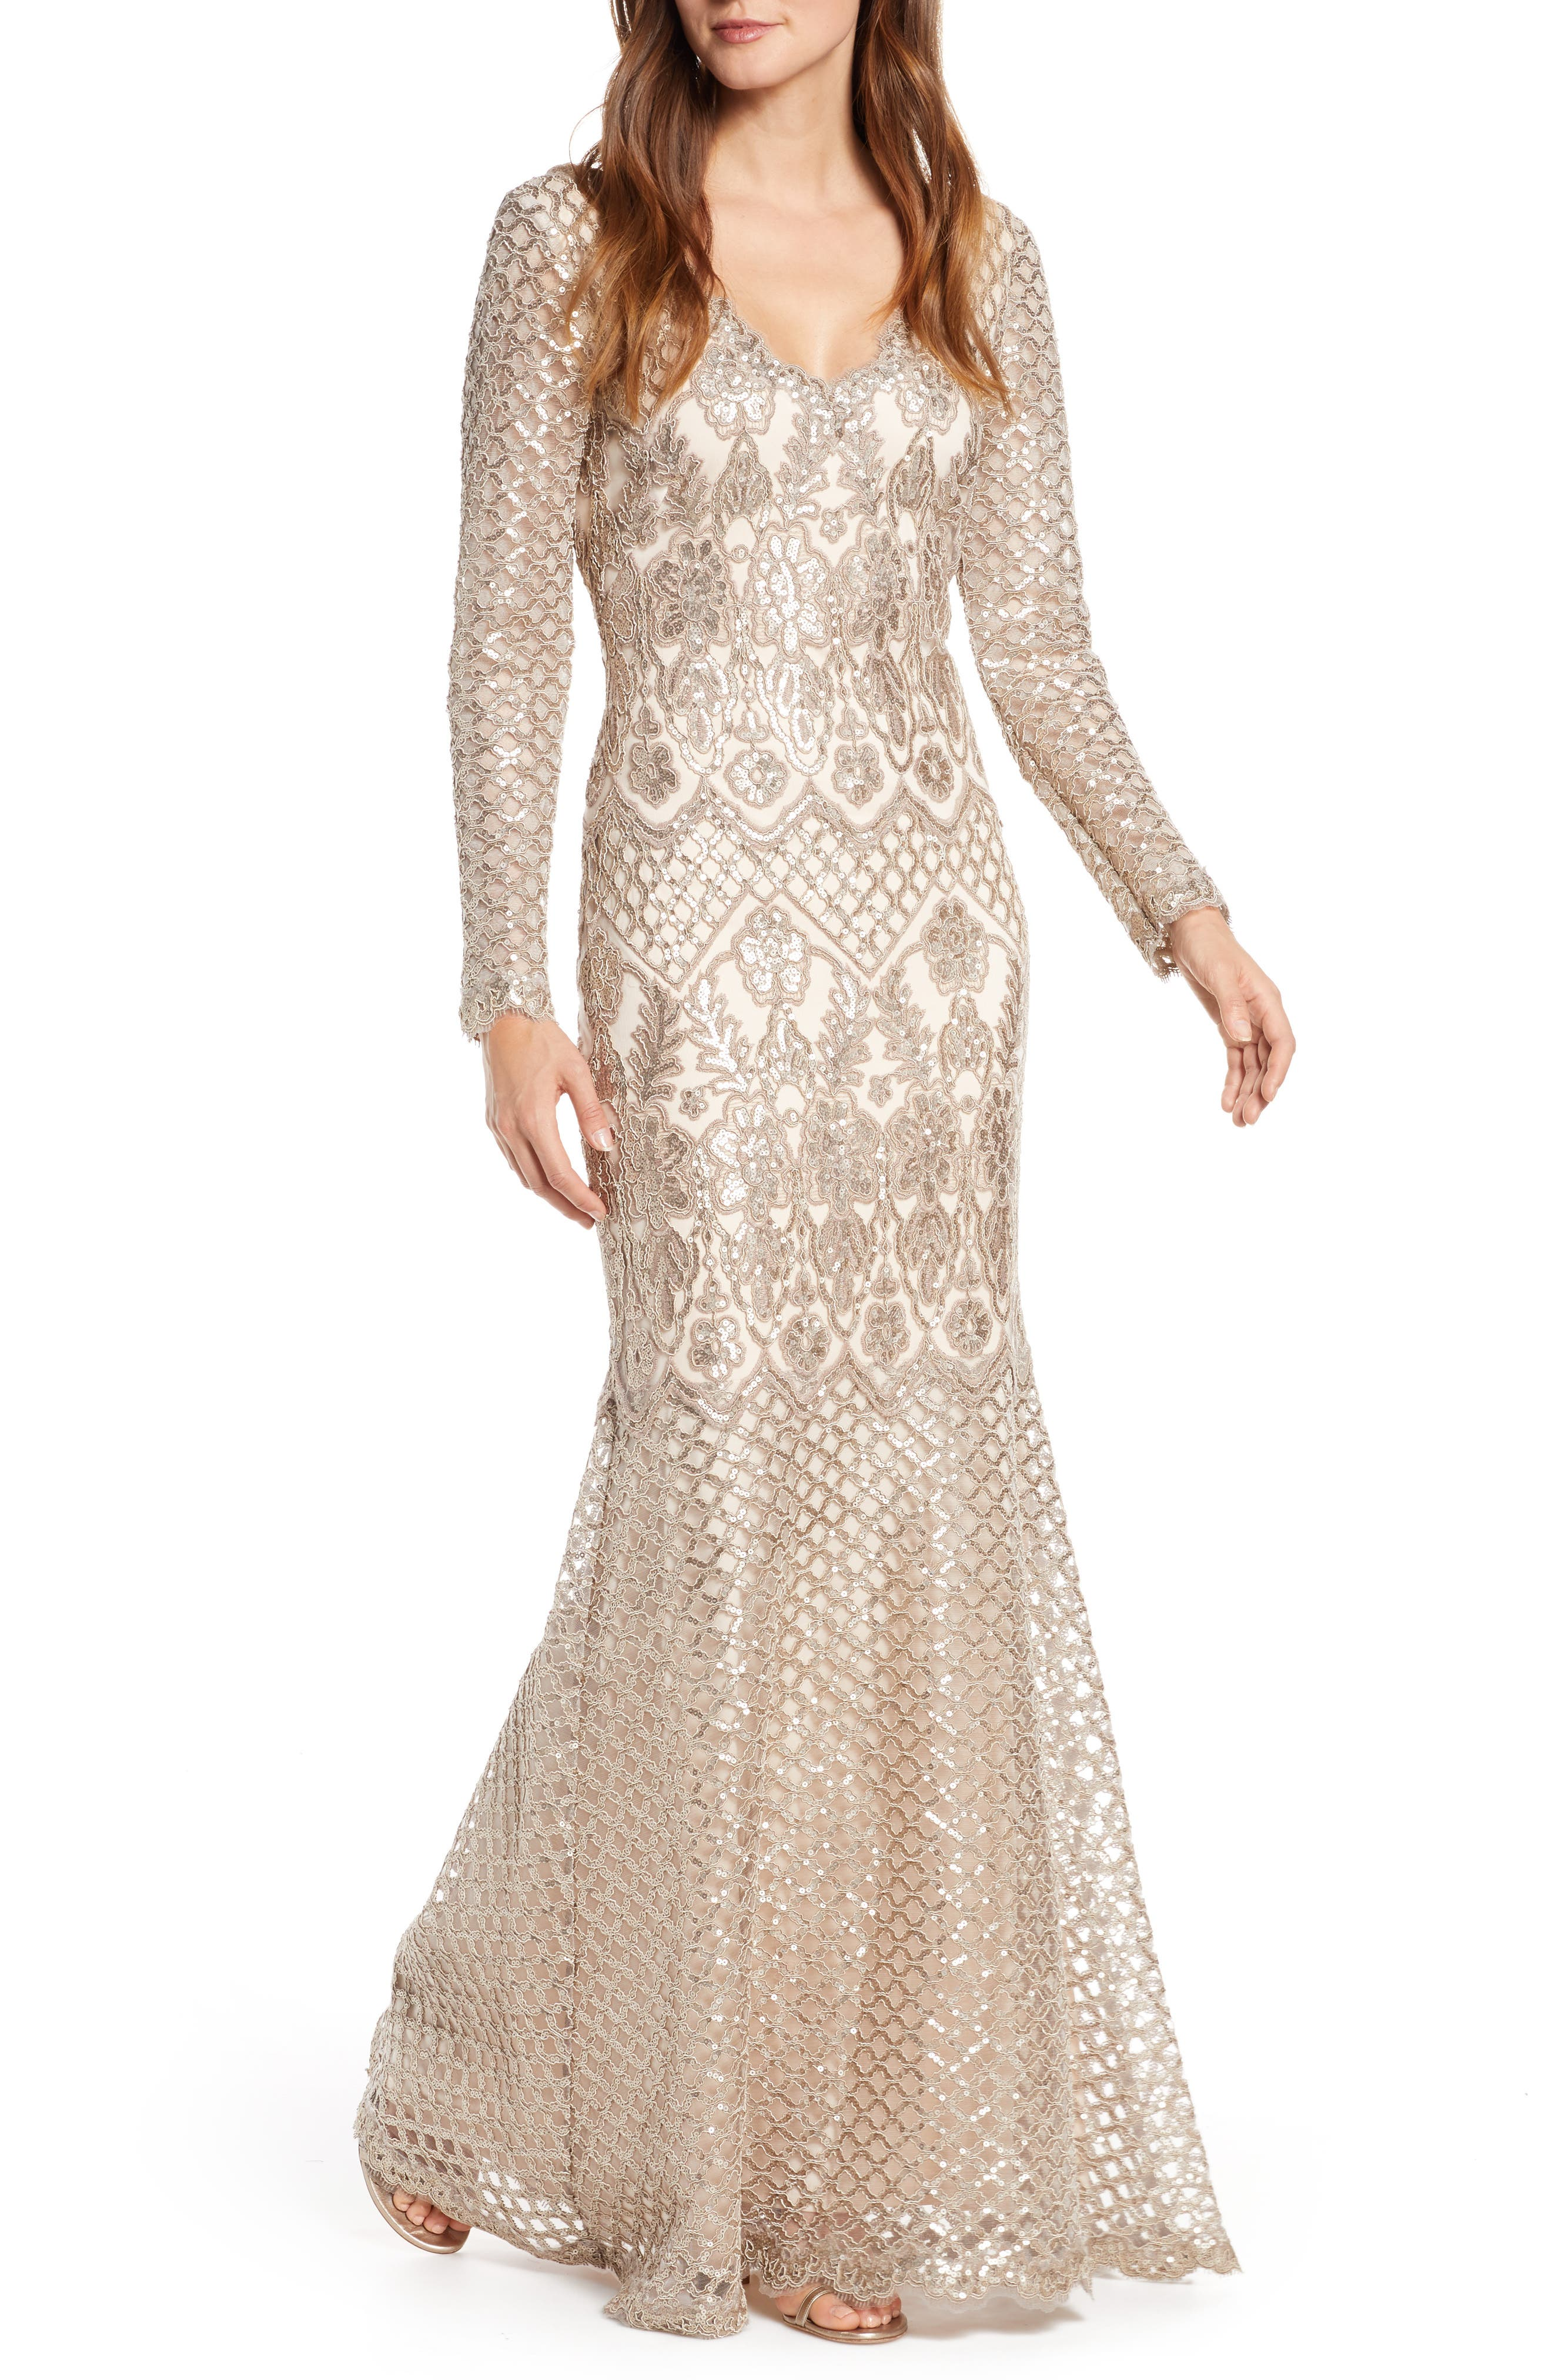 1920s Formal Dresses & Evening Gowns Guide Womens Tadashi Shoji Sequin Lace Long Sleeve Trumpet Gown $468.00 AT vintagedancer.com